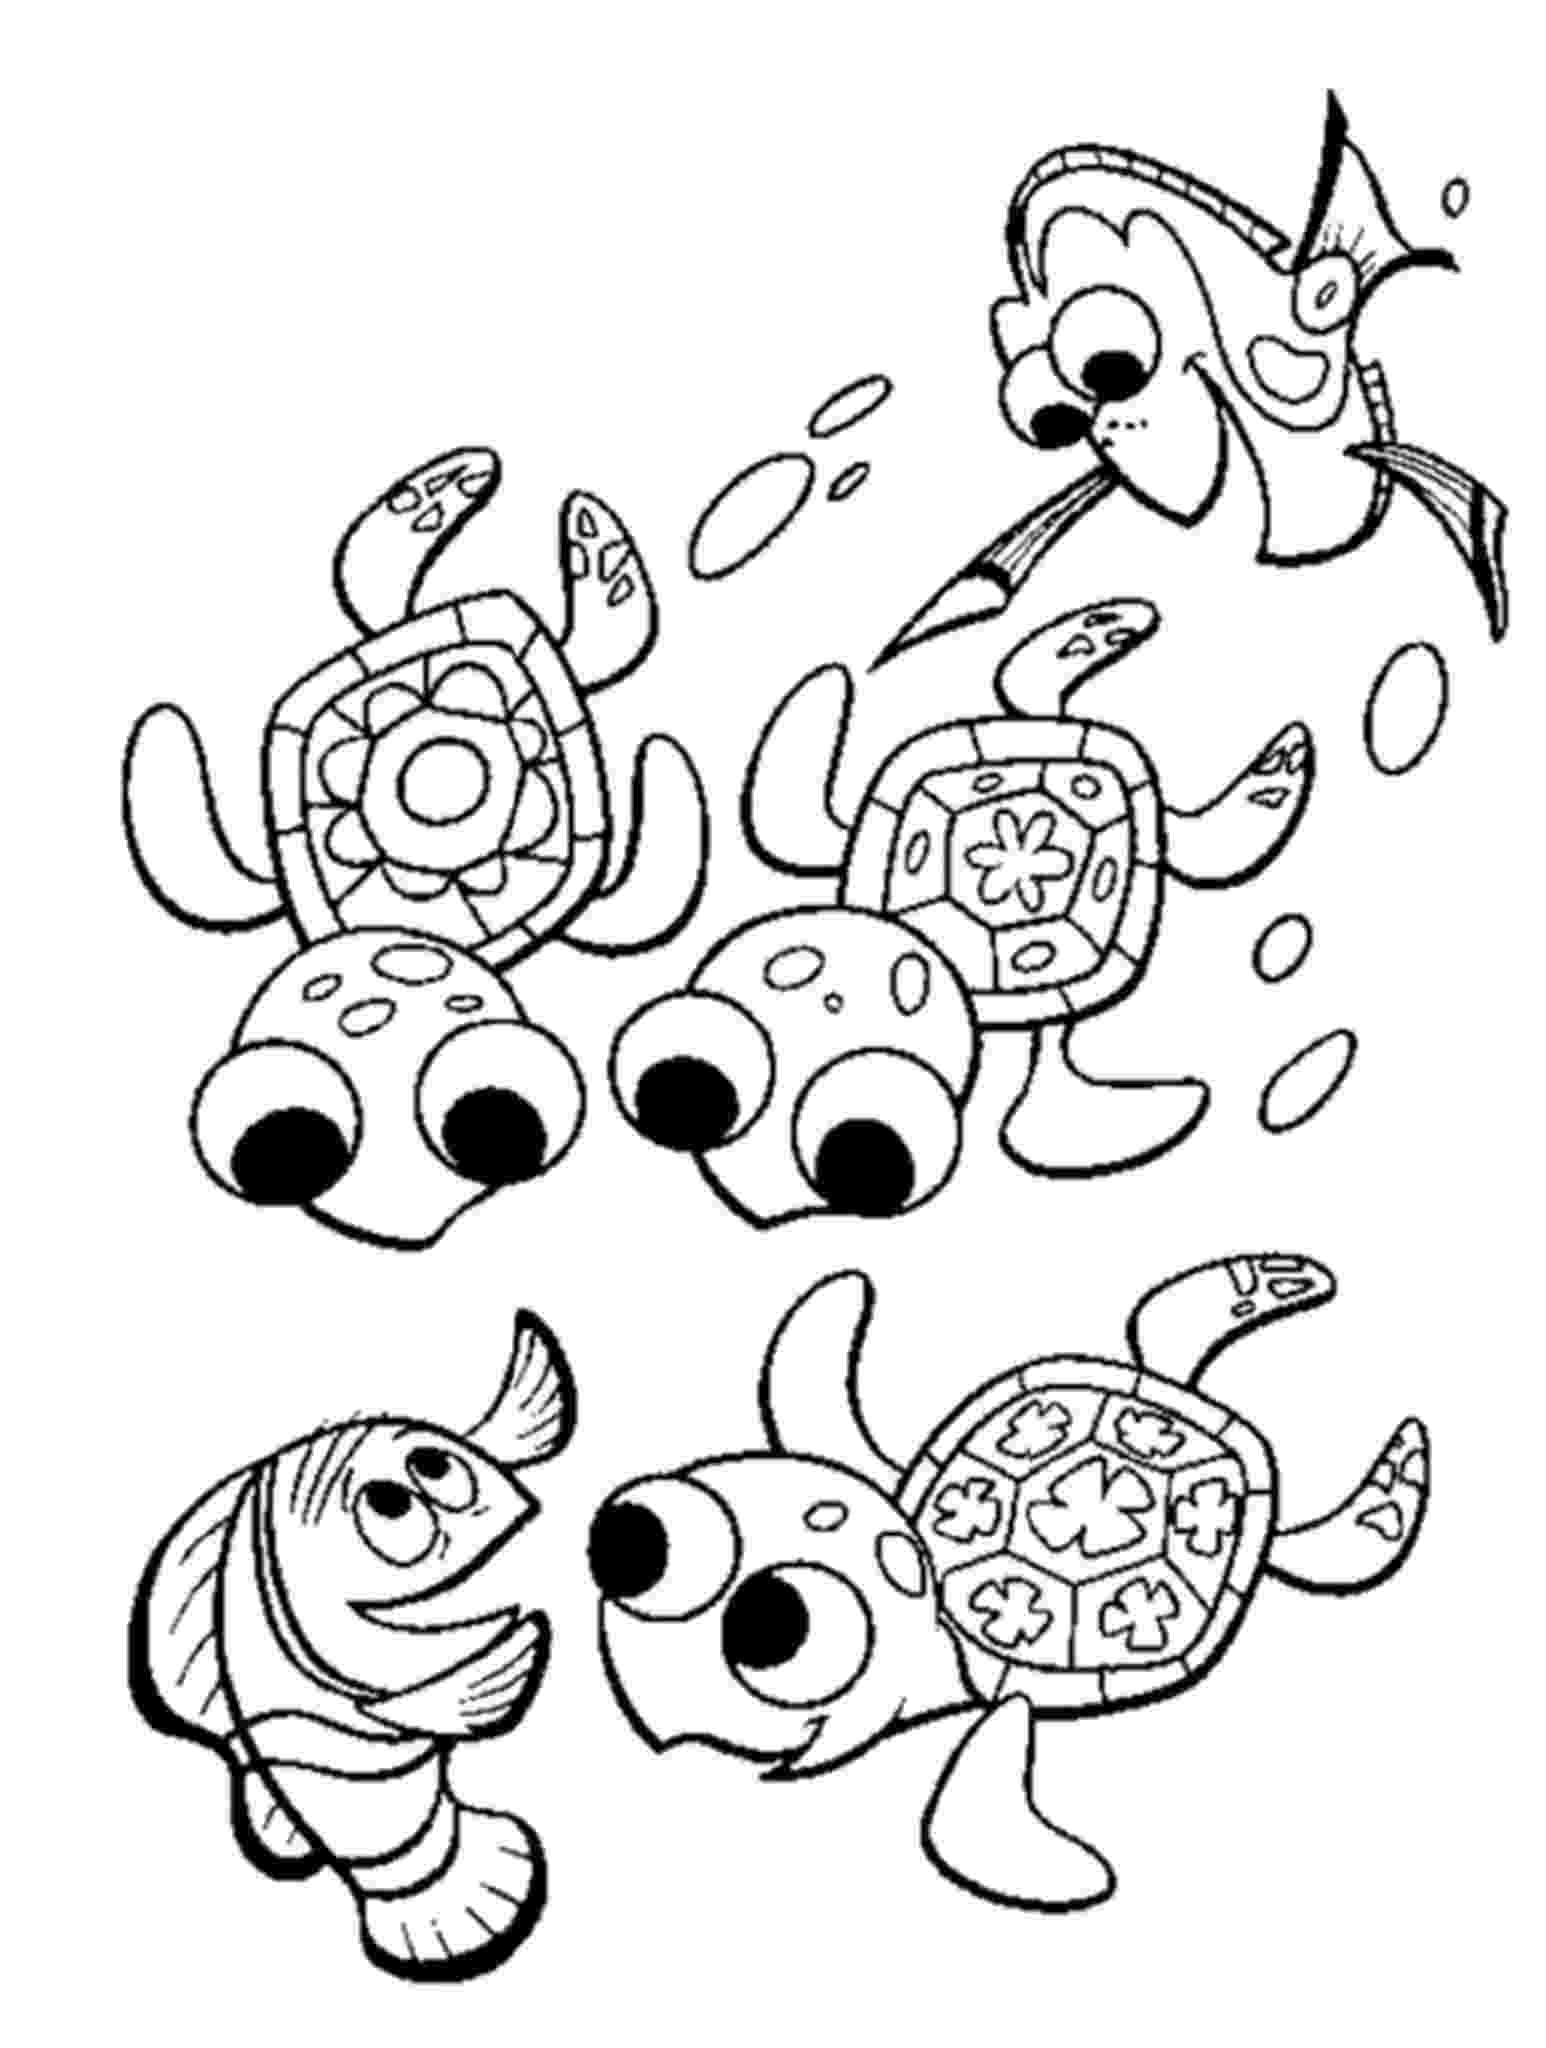 finding nemo colouring page finding nemo coloring pages to download and print for free page finding colouring nemo